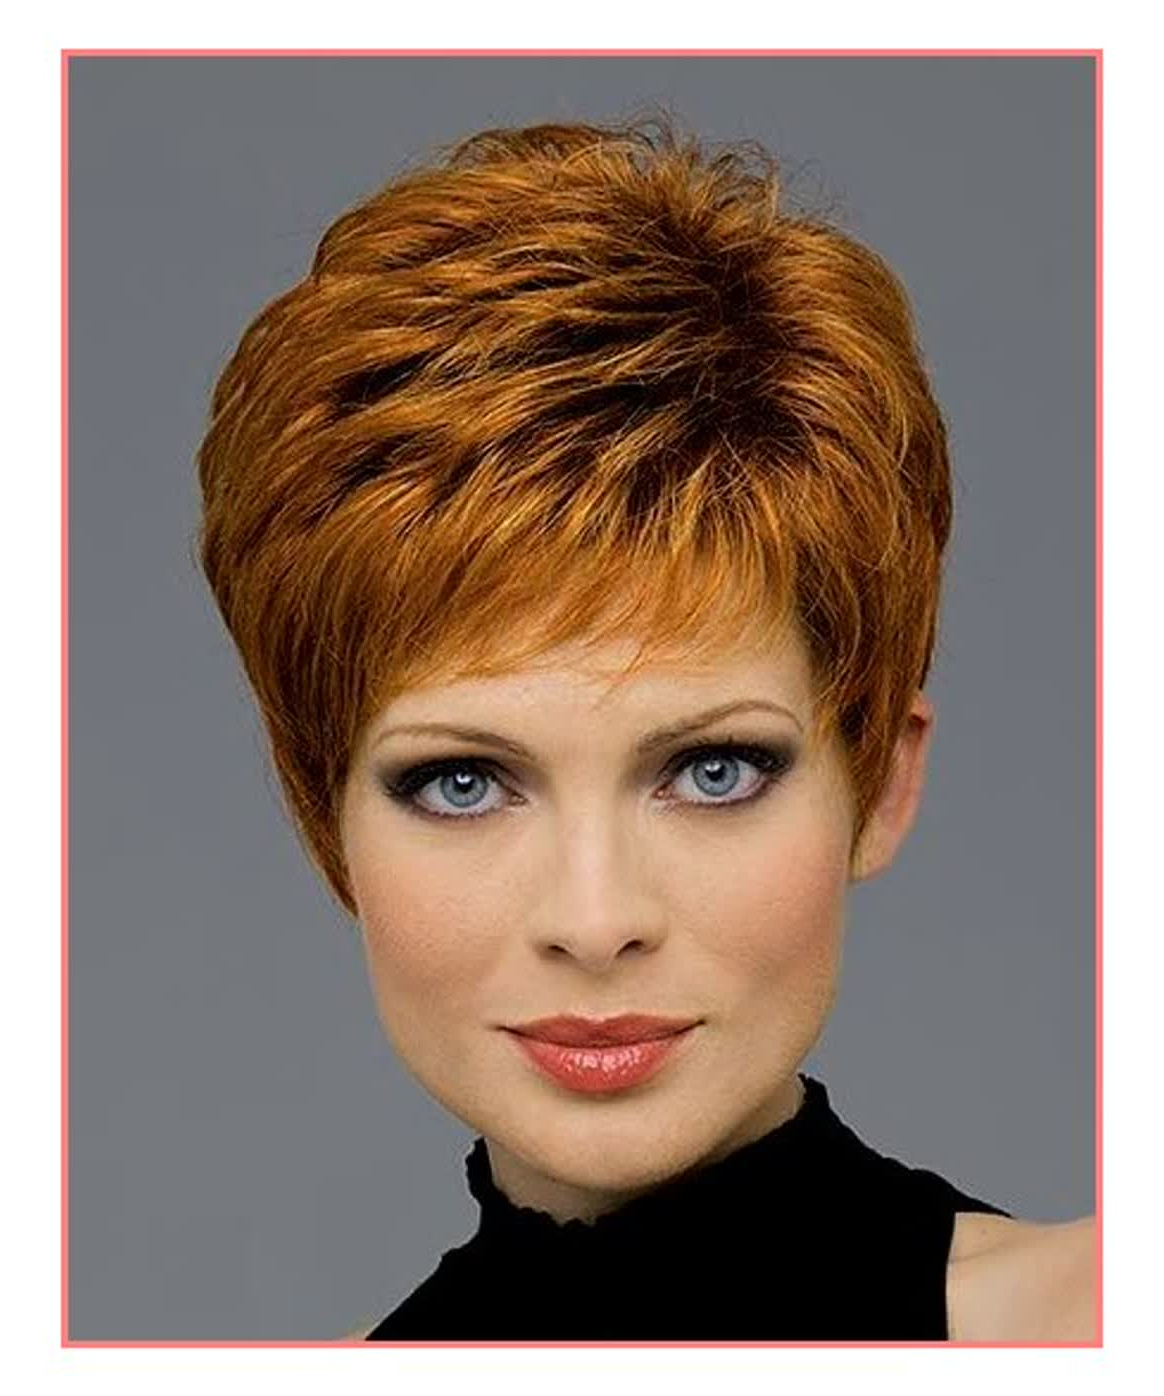 Ladies Hairstyles For Over 50S   Women Hairstyles Regarding Over 50S Hairstyles For Short Hair (View 17 of 25)